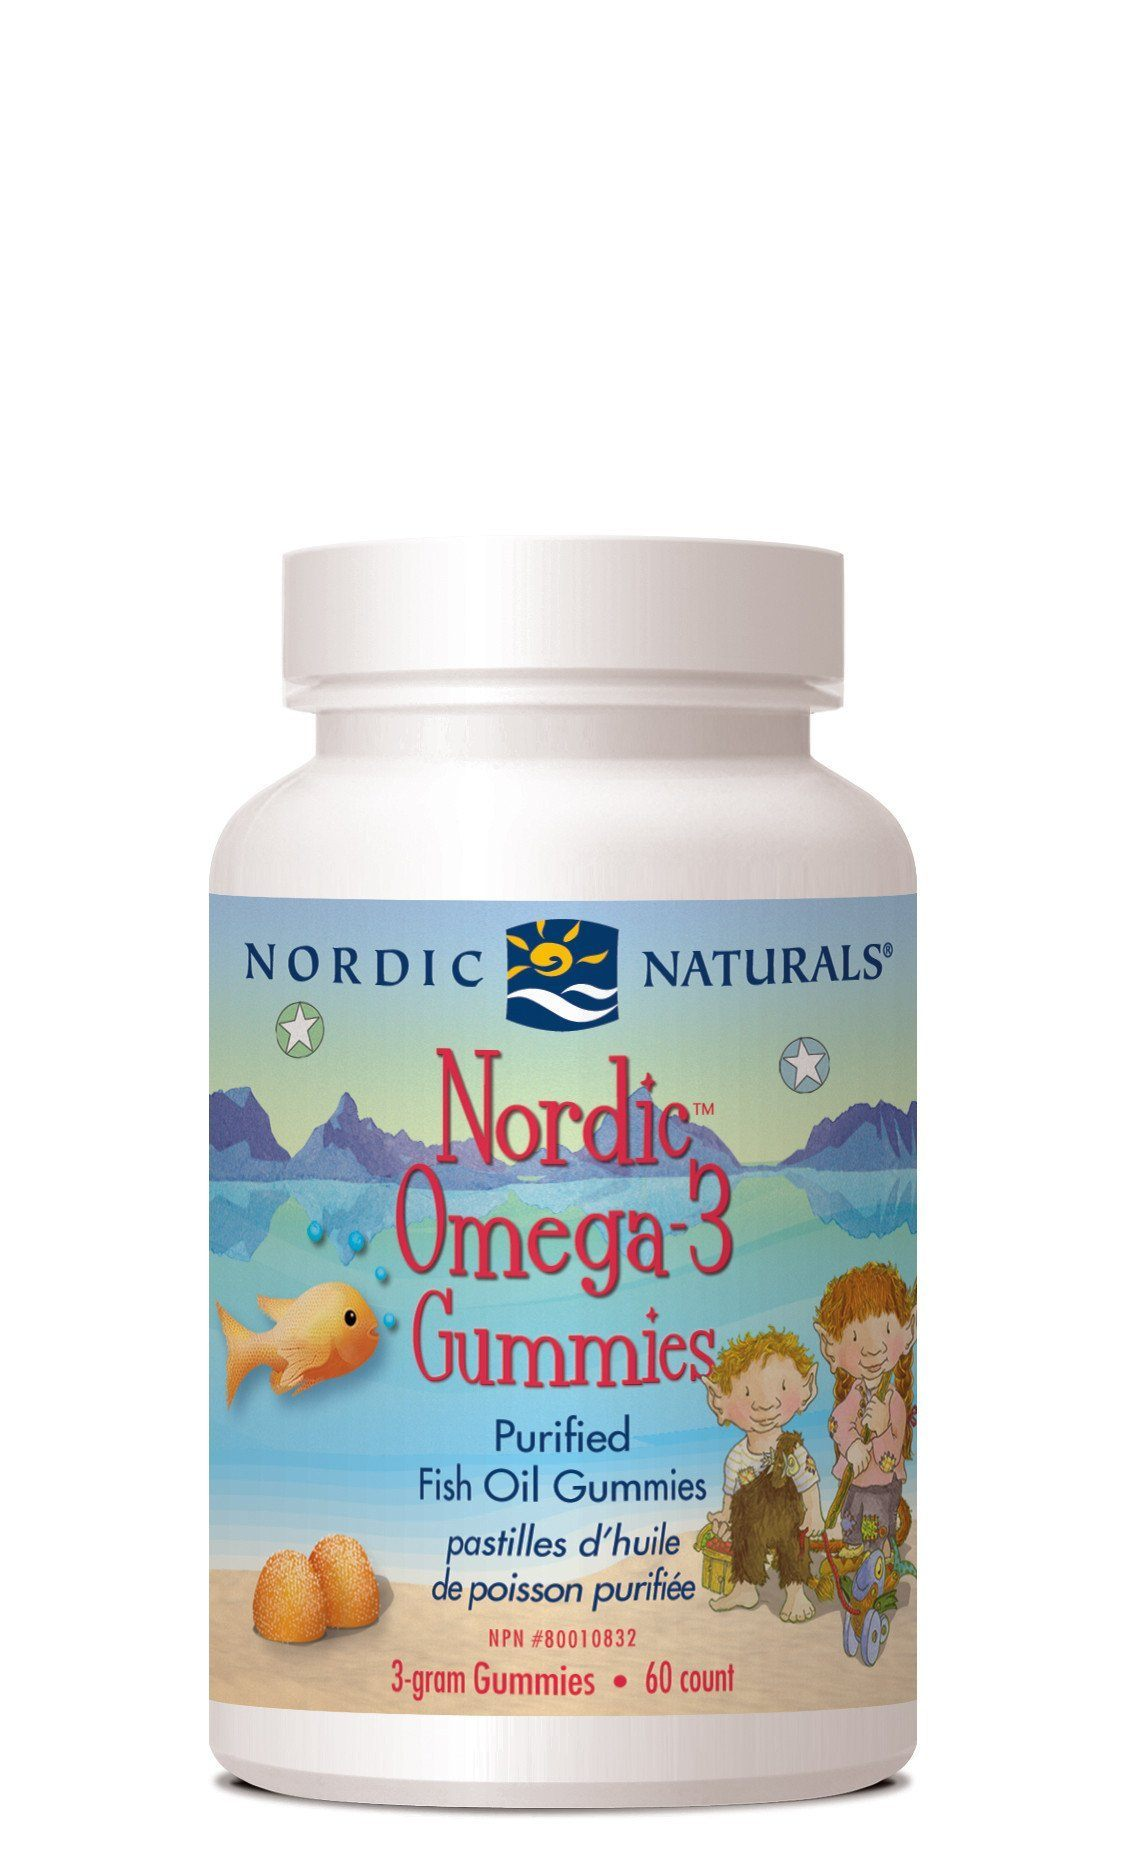 Supplements & Vitamins - Nordic Naturals - Omega 3 Gummies, 60 Chews